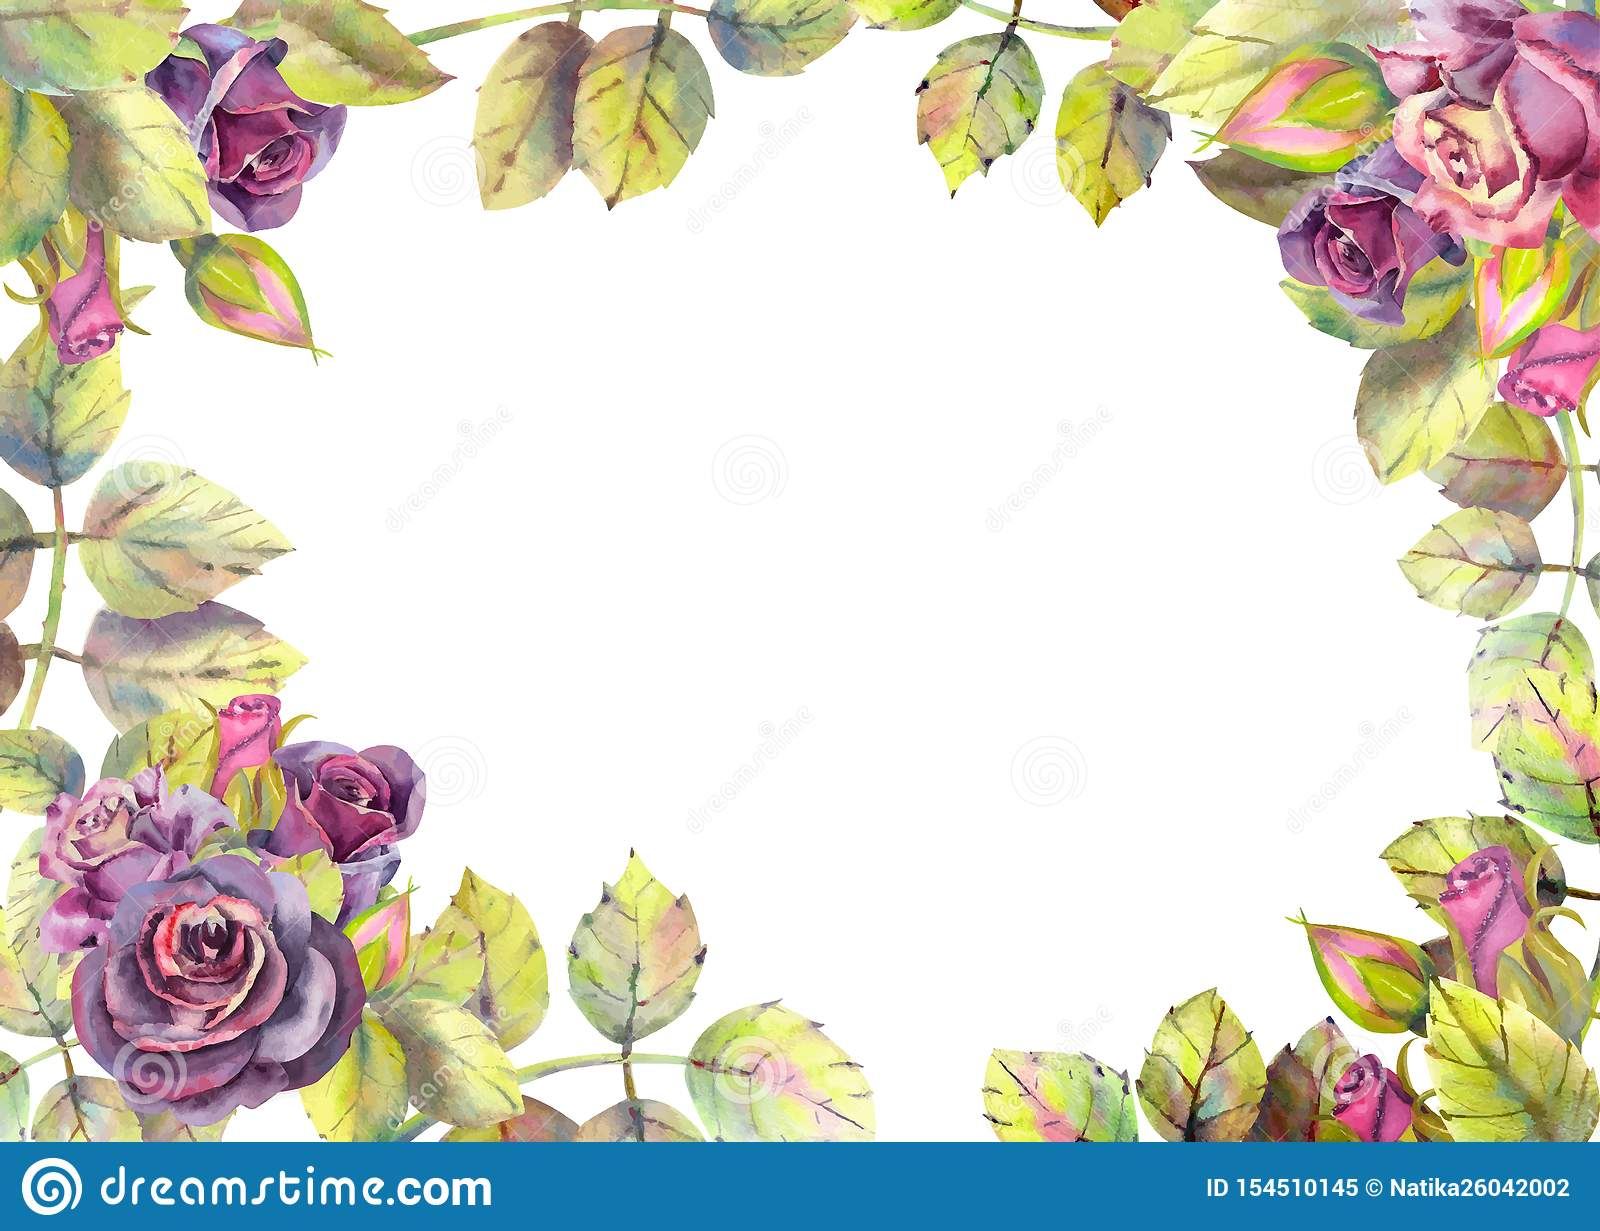 Horizontal frame with dark rose flowers. Compositions for the design of greeting cards or invitations. Vector illustration